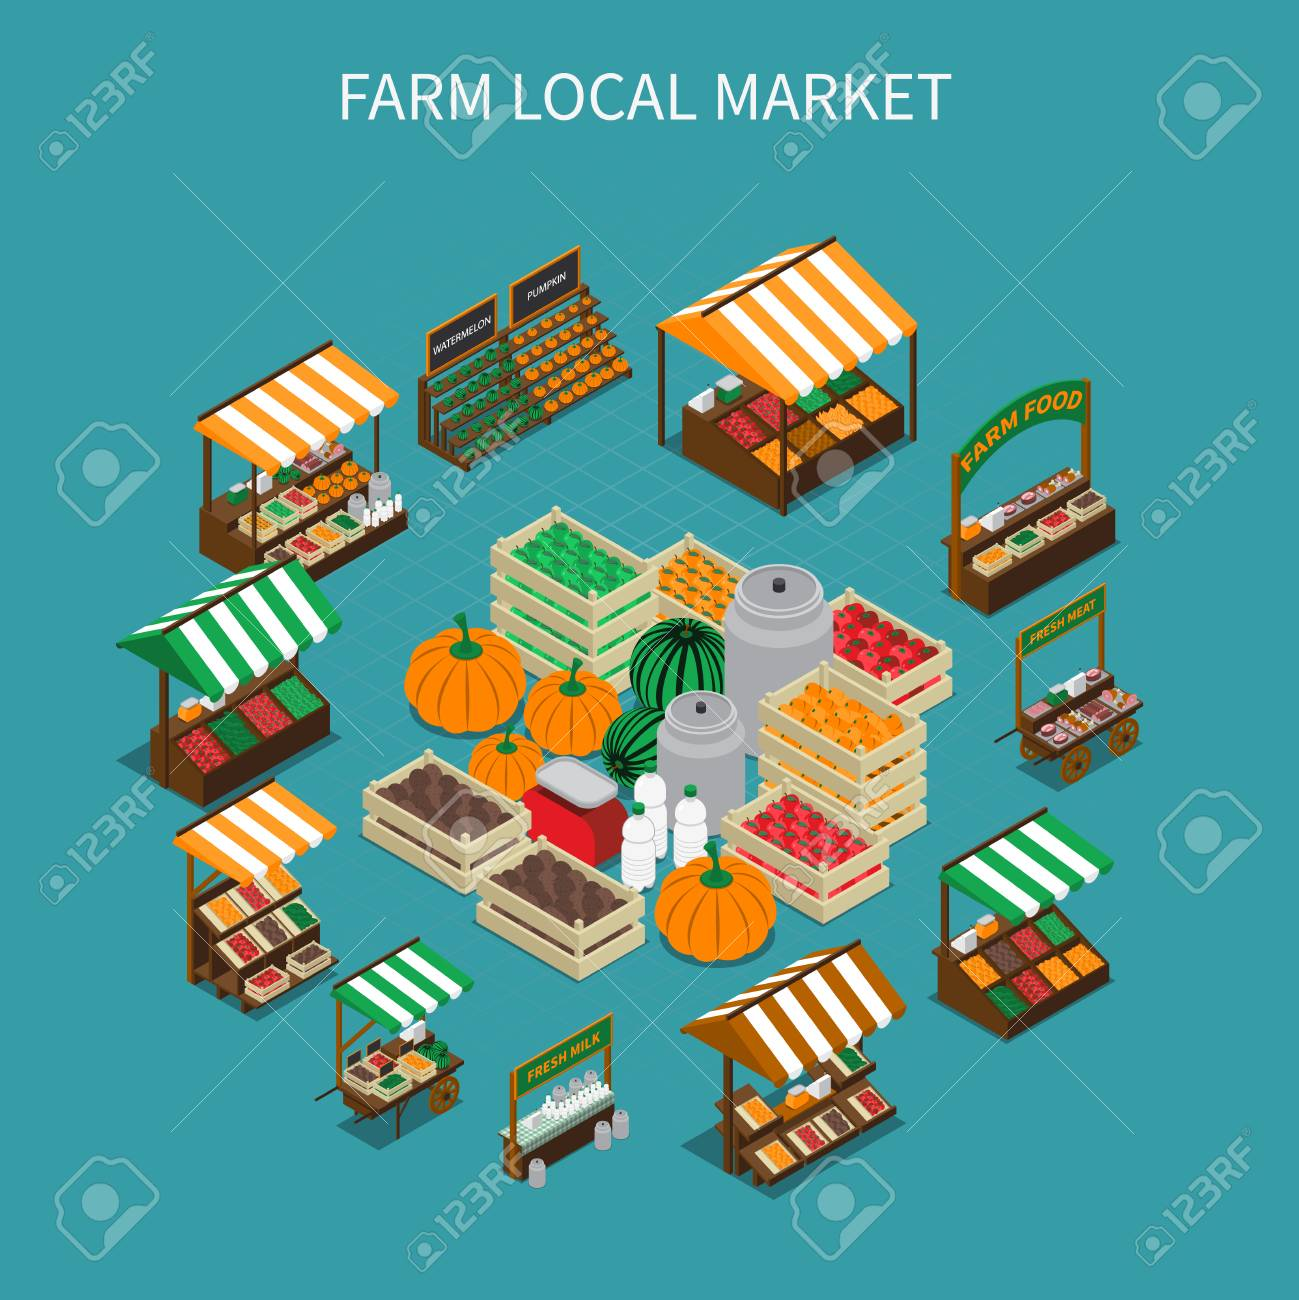 Farm local market isometric composition with images of stall tents and boxes filled with vegetables vector illustration - 92742937